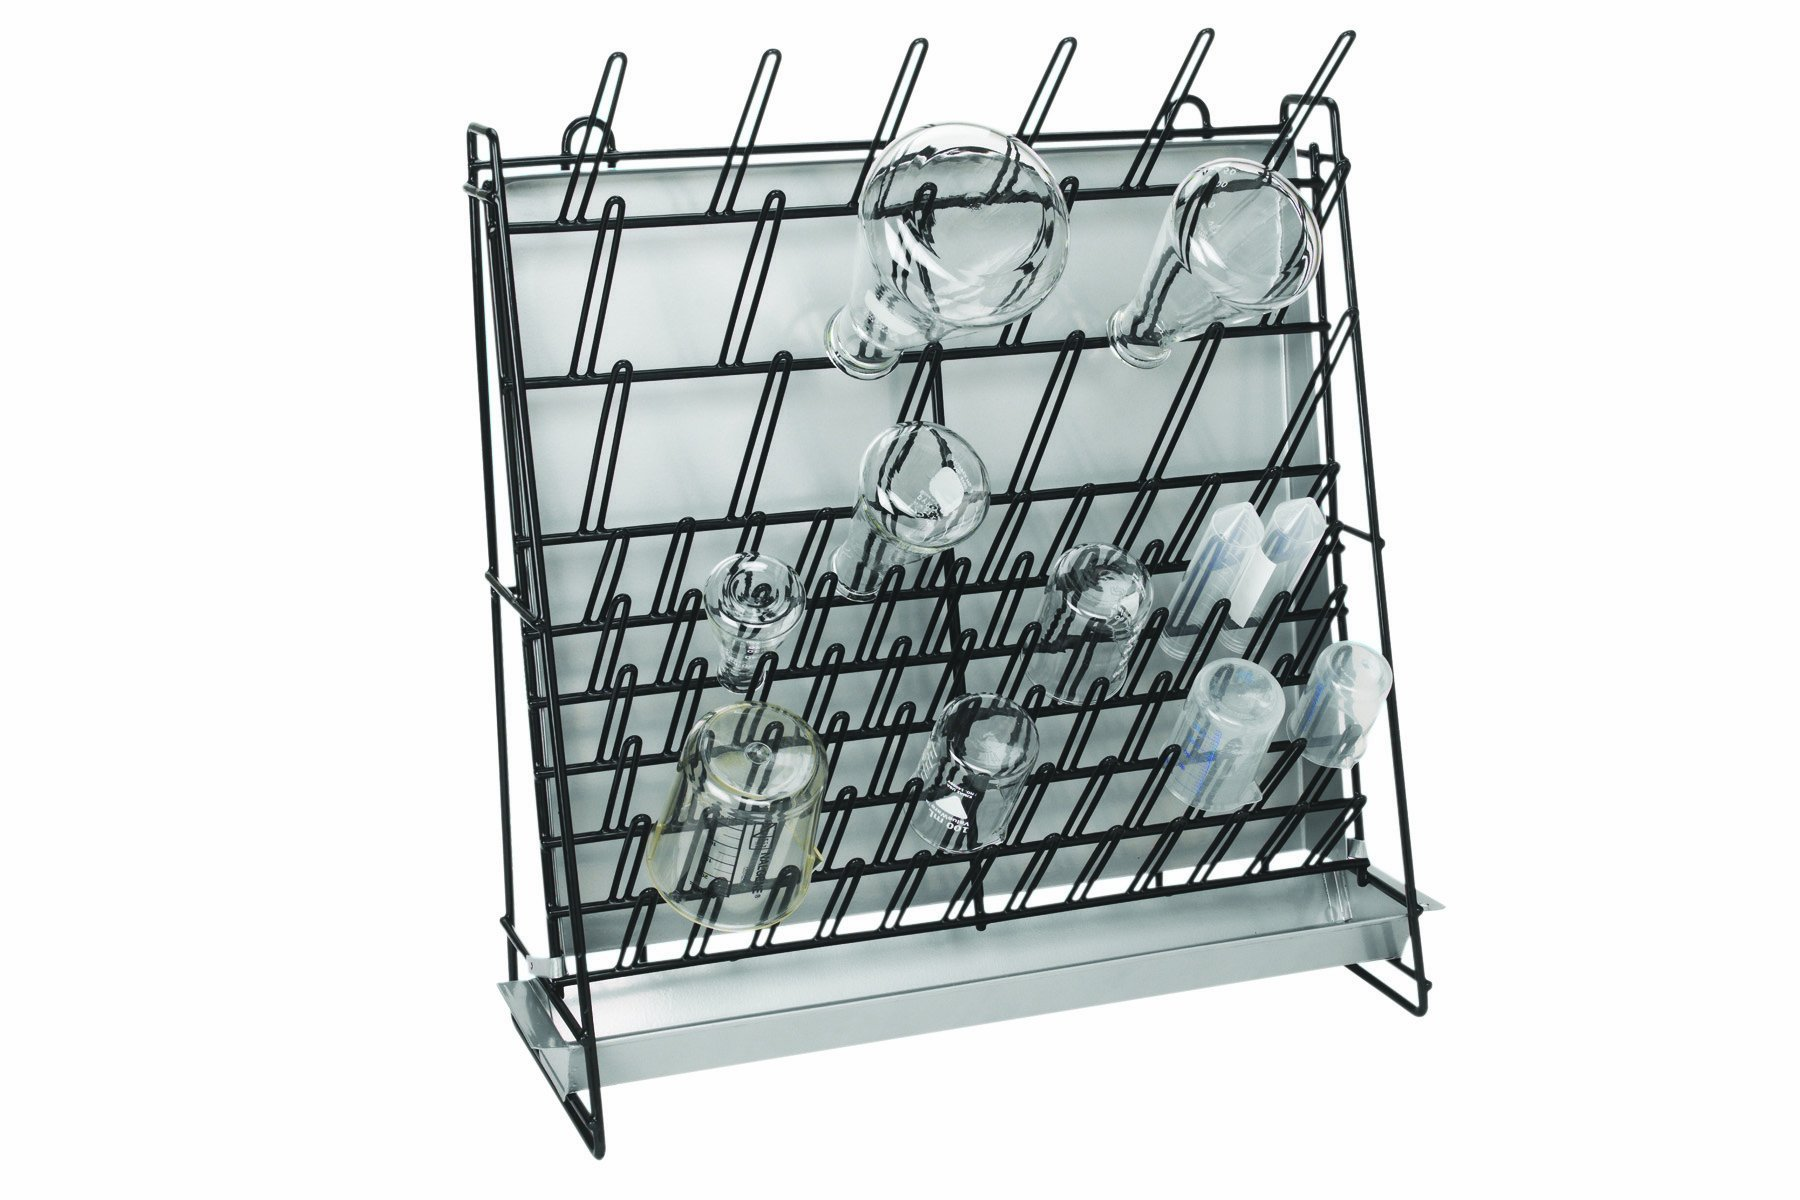 Heathrow Scientific HS23243A Glassware Drying Rack, Vinyl-Coated Steel Wire Construction, Self-Standing or Wall-Mountable, 462 x 182 x 525mm (L x W x H) by Heathrow Scientific